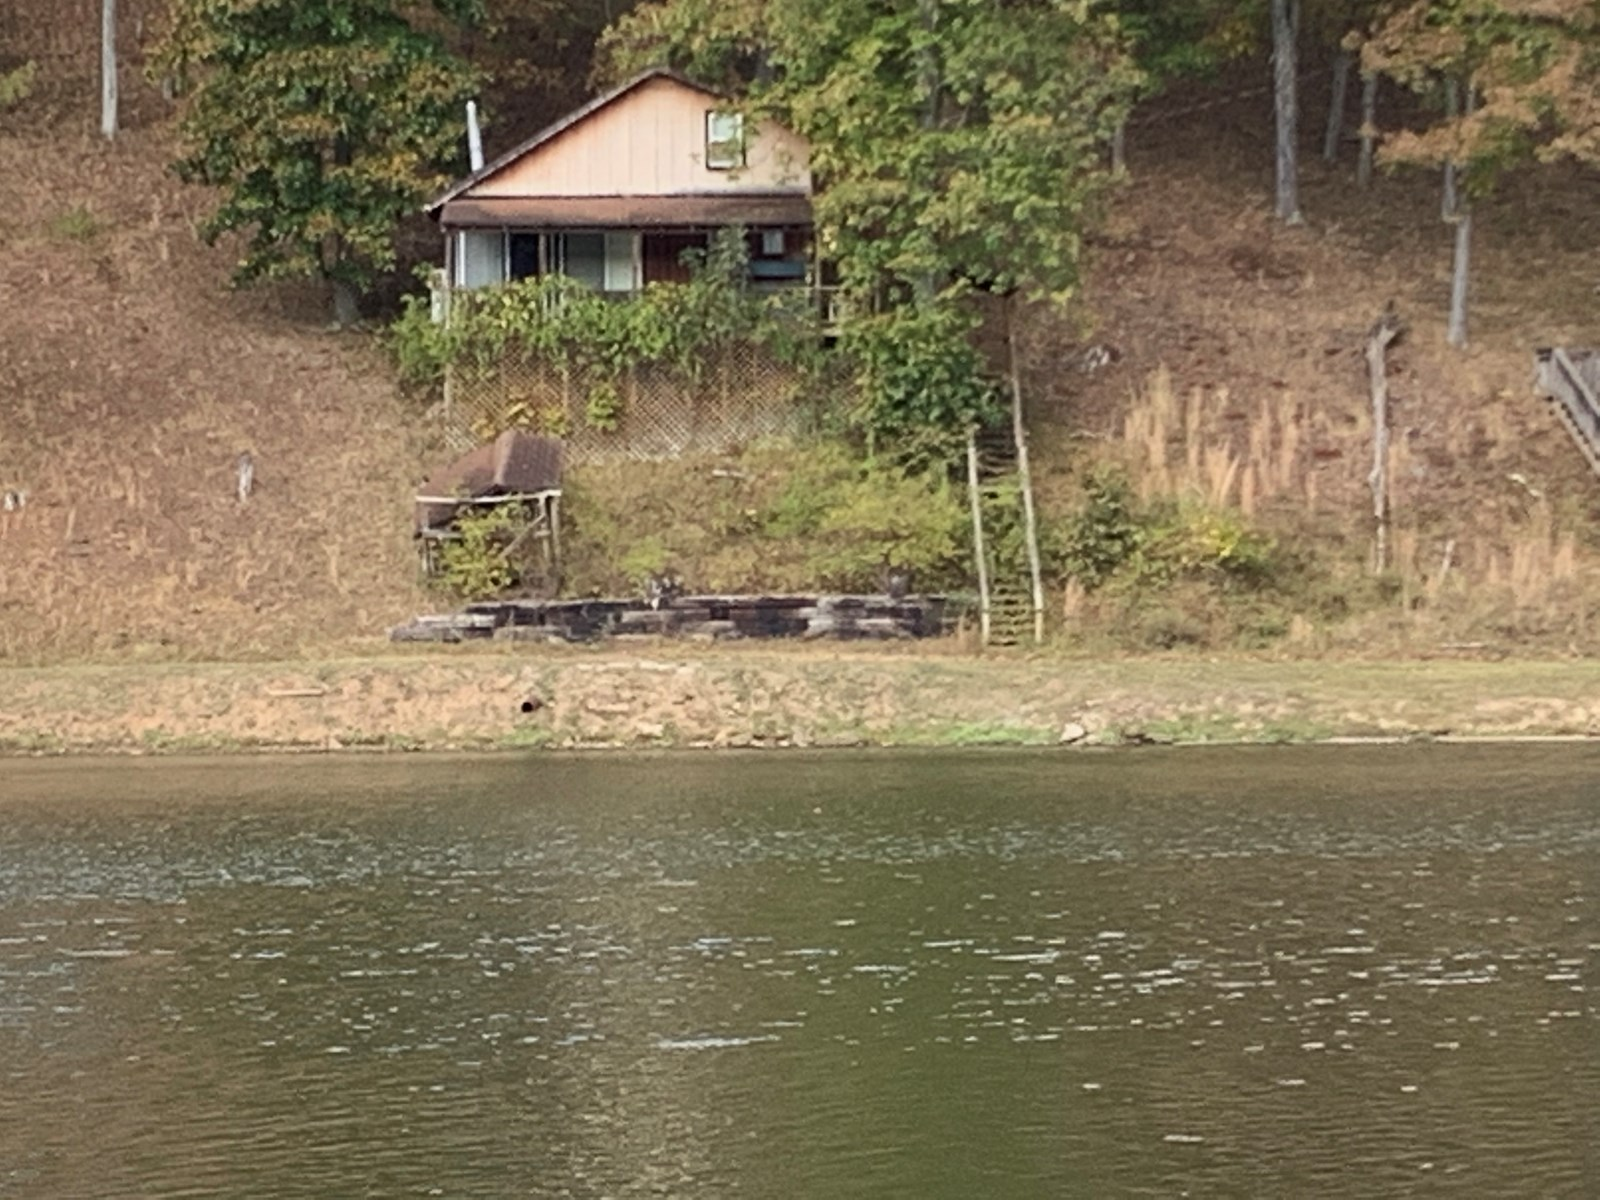 Lakeview Property at Crystal Lake in Doddridge County WV